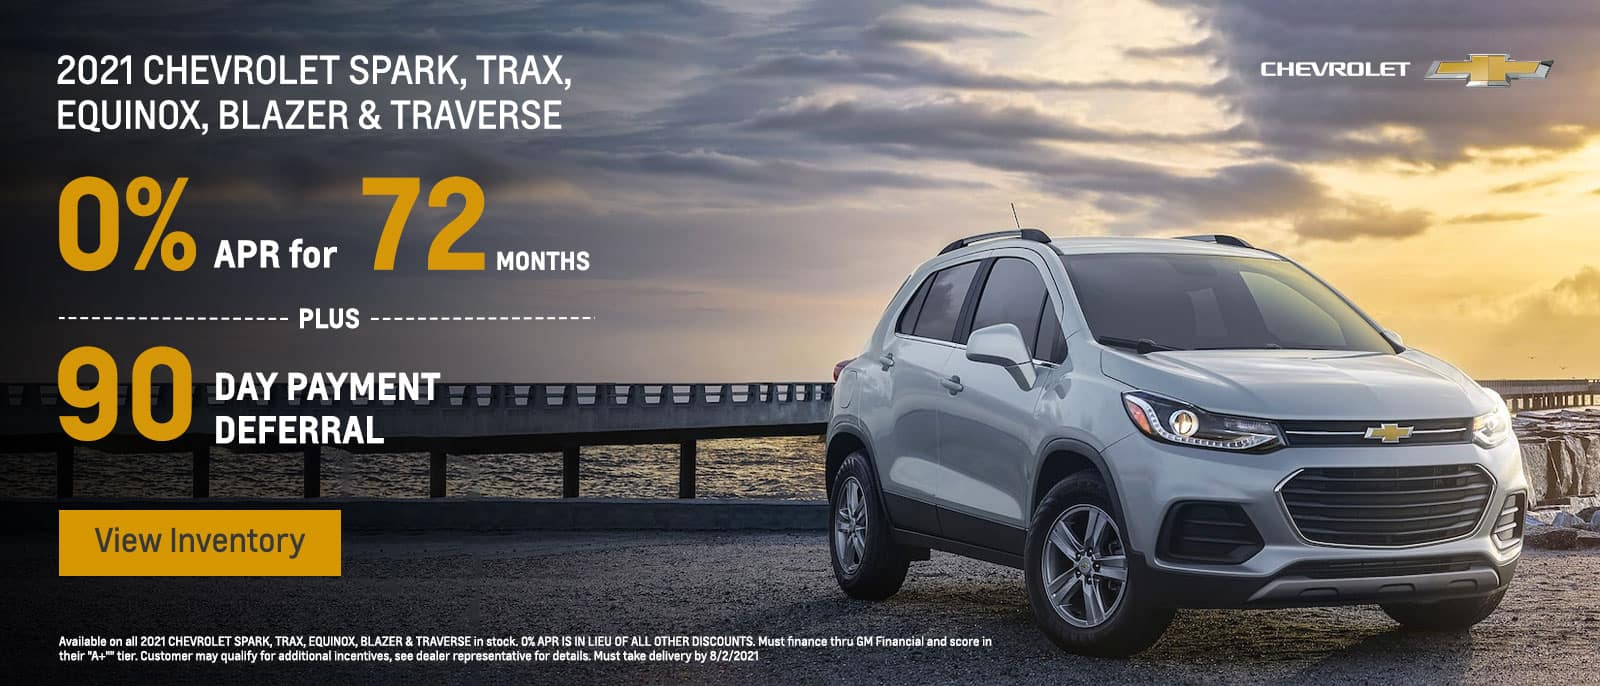 2021 CHEVROLET SPARK, TRAX, EQUINOX, BLAZER & TRAVERSE. 0.00% FINANCING UP TO 72 MONTHS + 90 DAY PAYMENT DEFERRAL